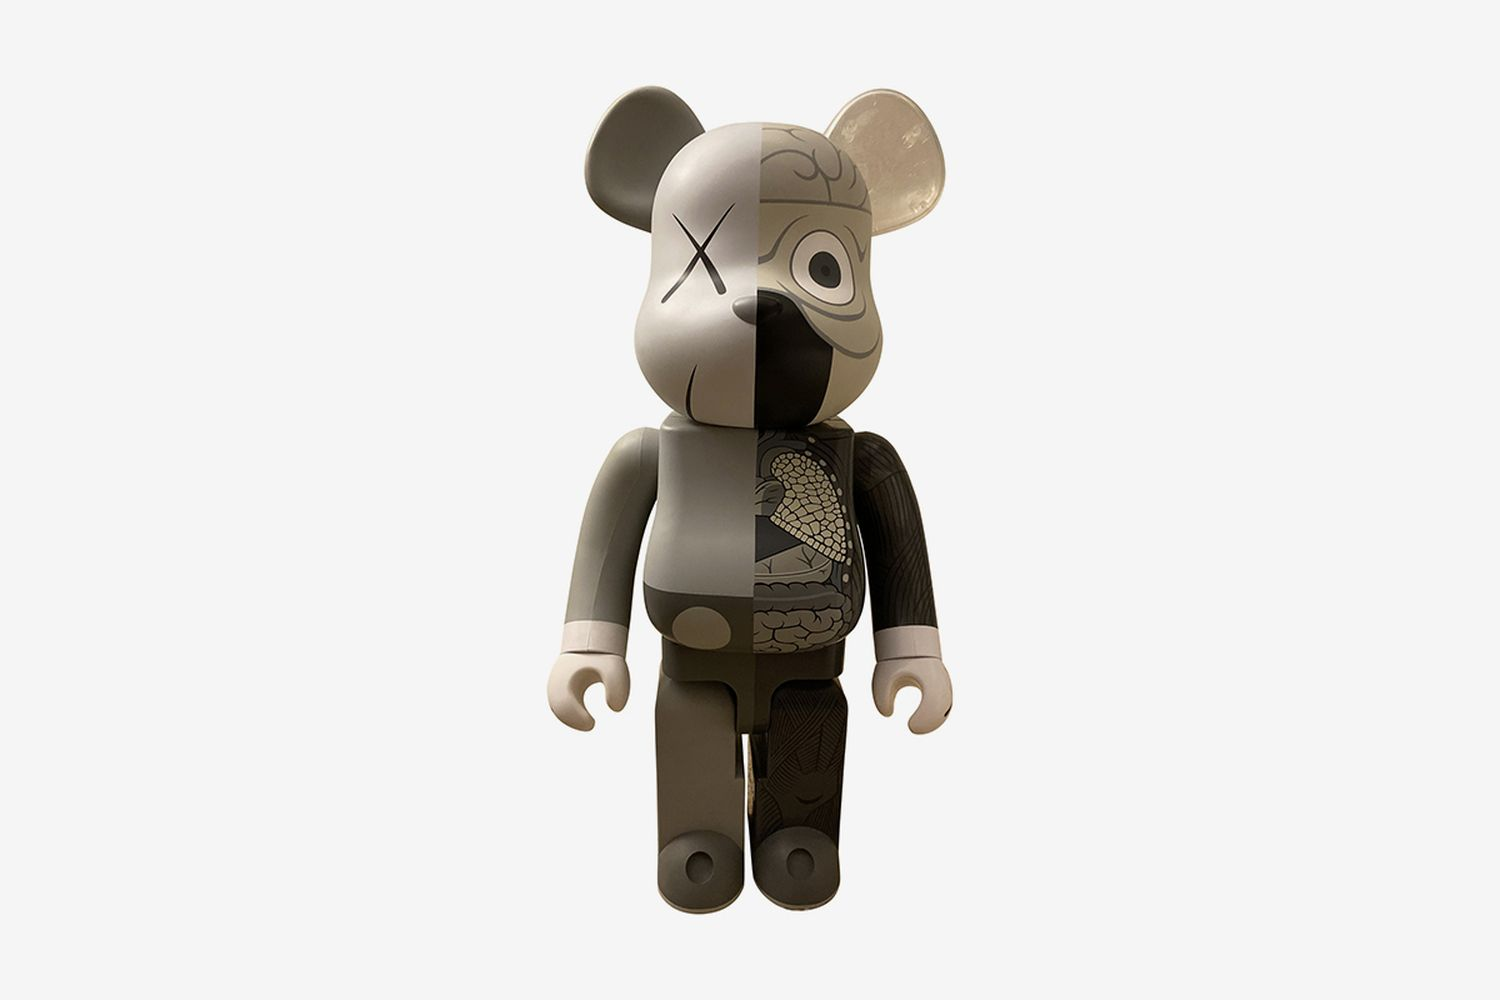 Dissected Companion 1000% Bearbrick, 2010